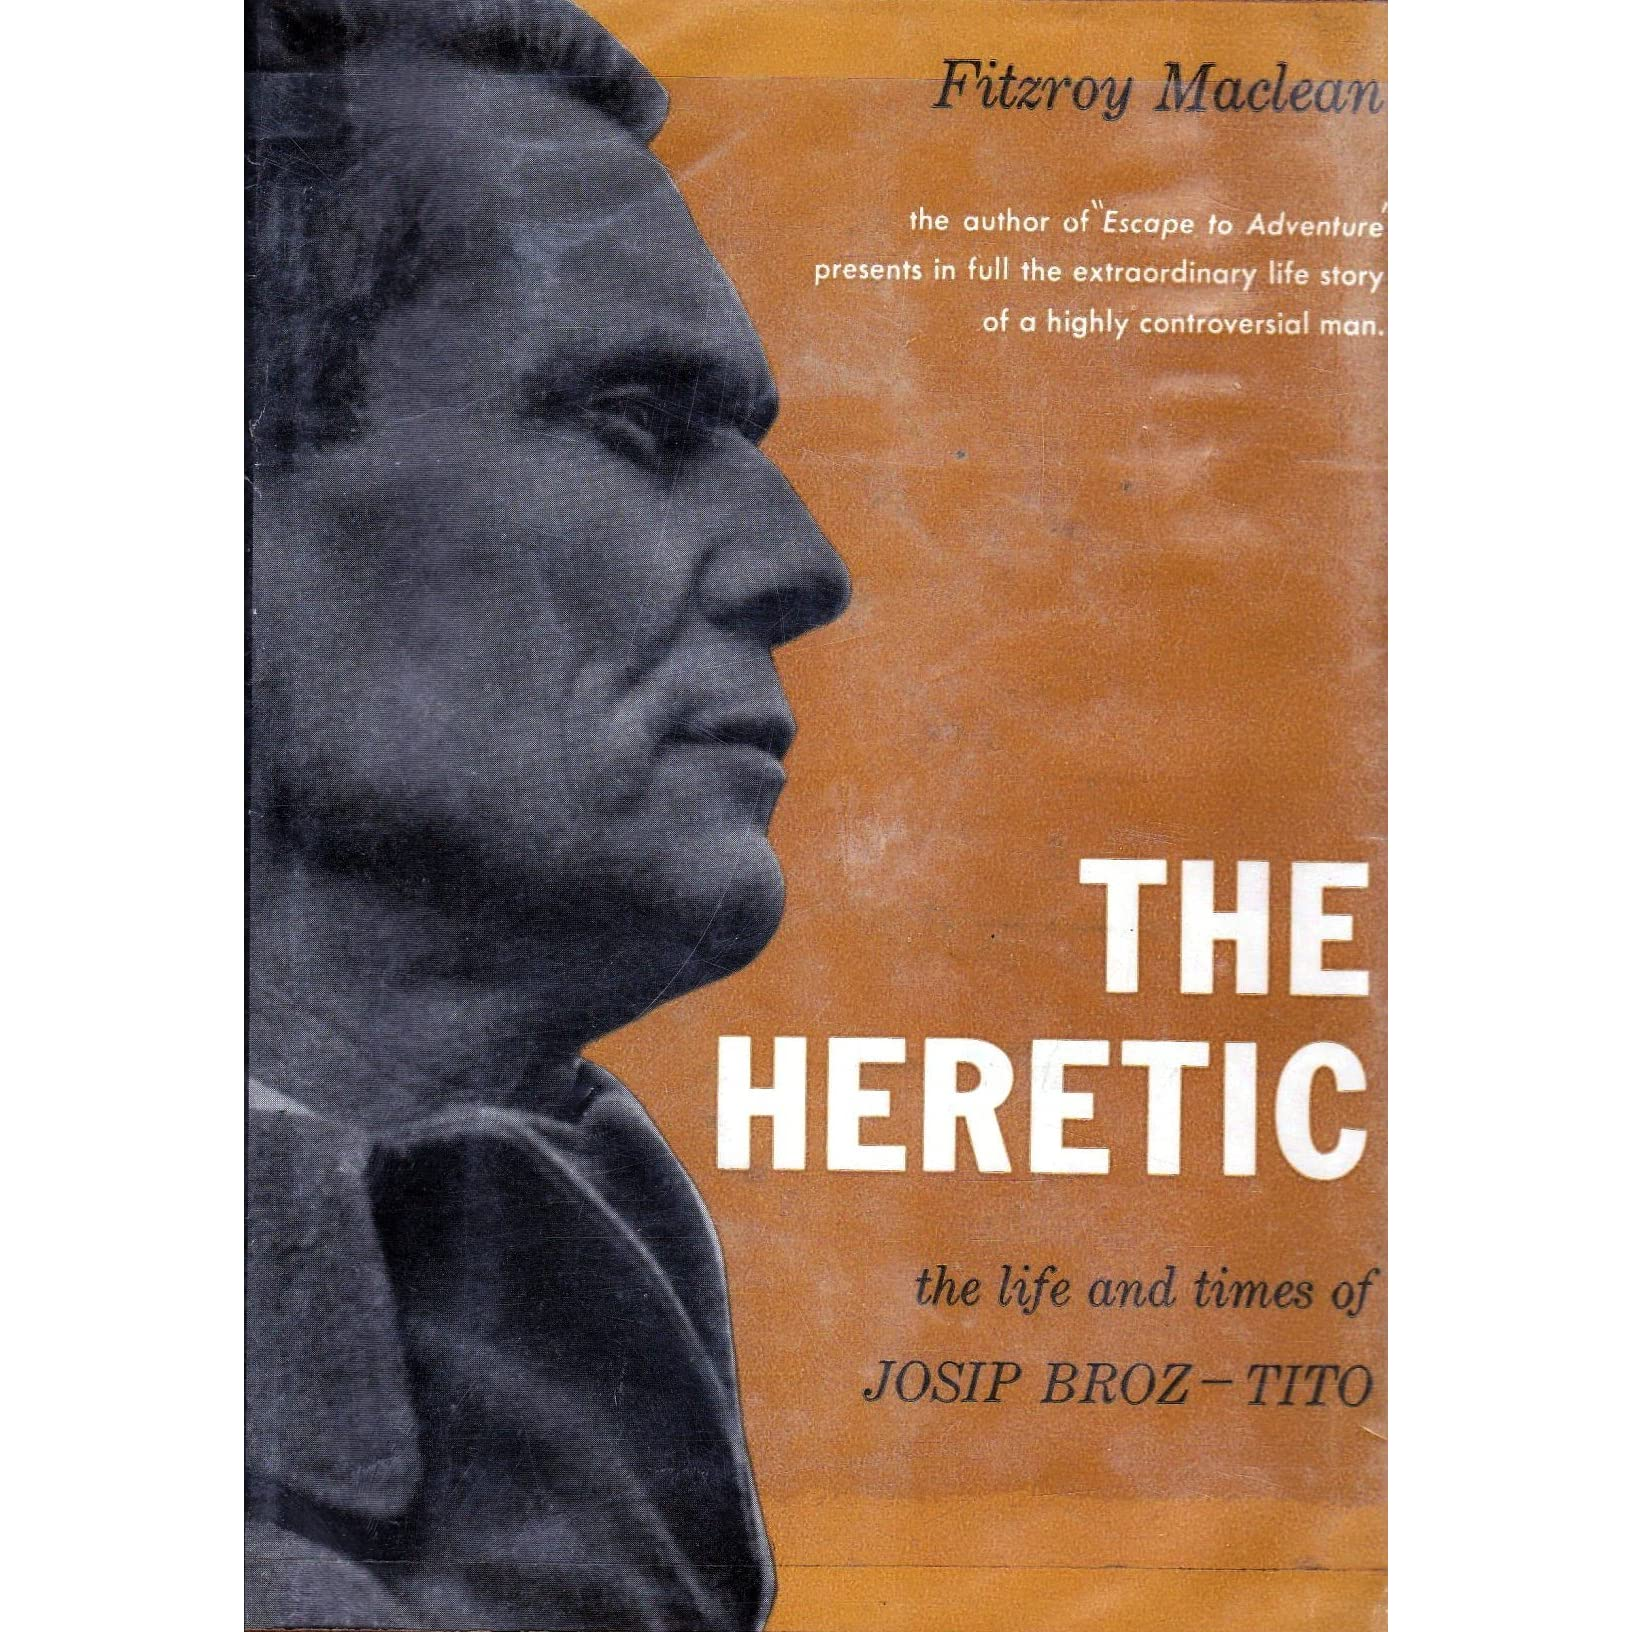 the heretic the life and times of josip broz tito by fitzroy maclean